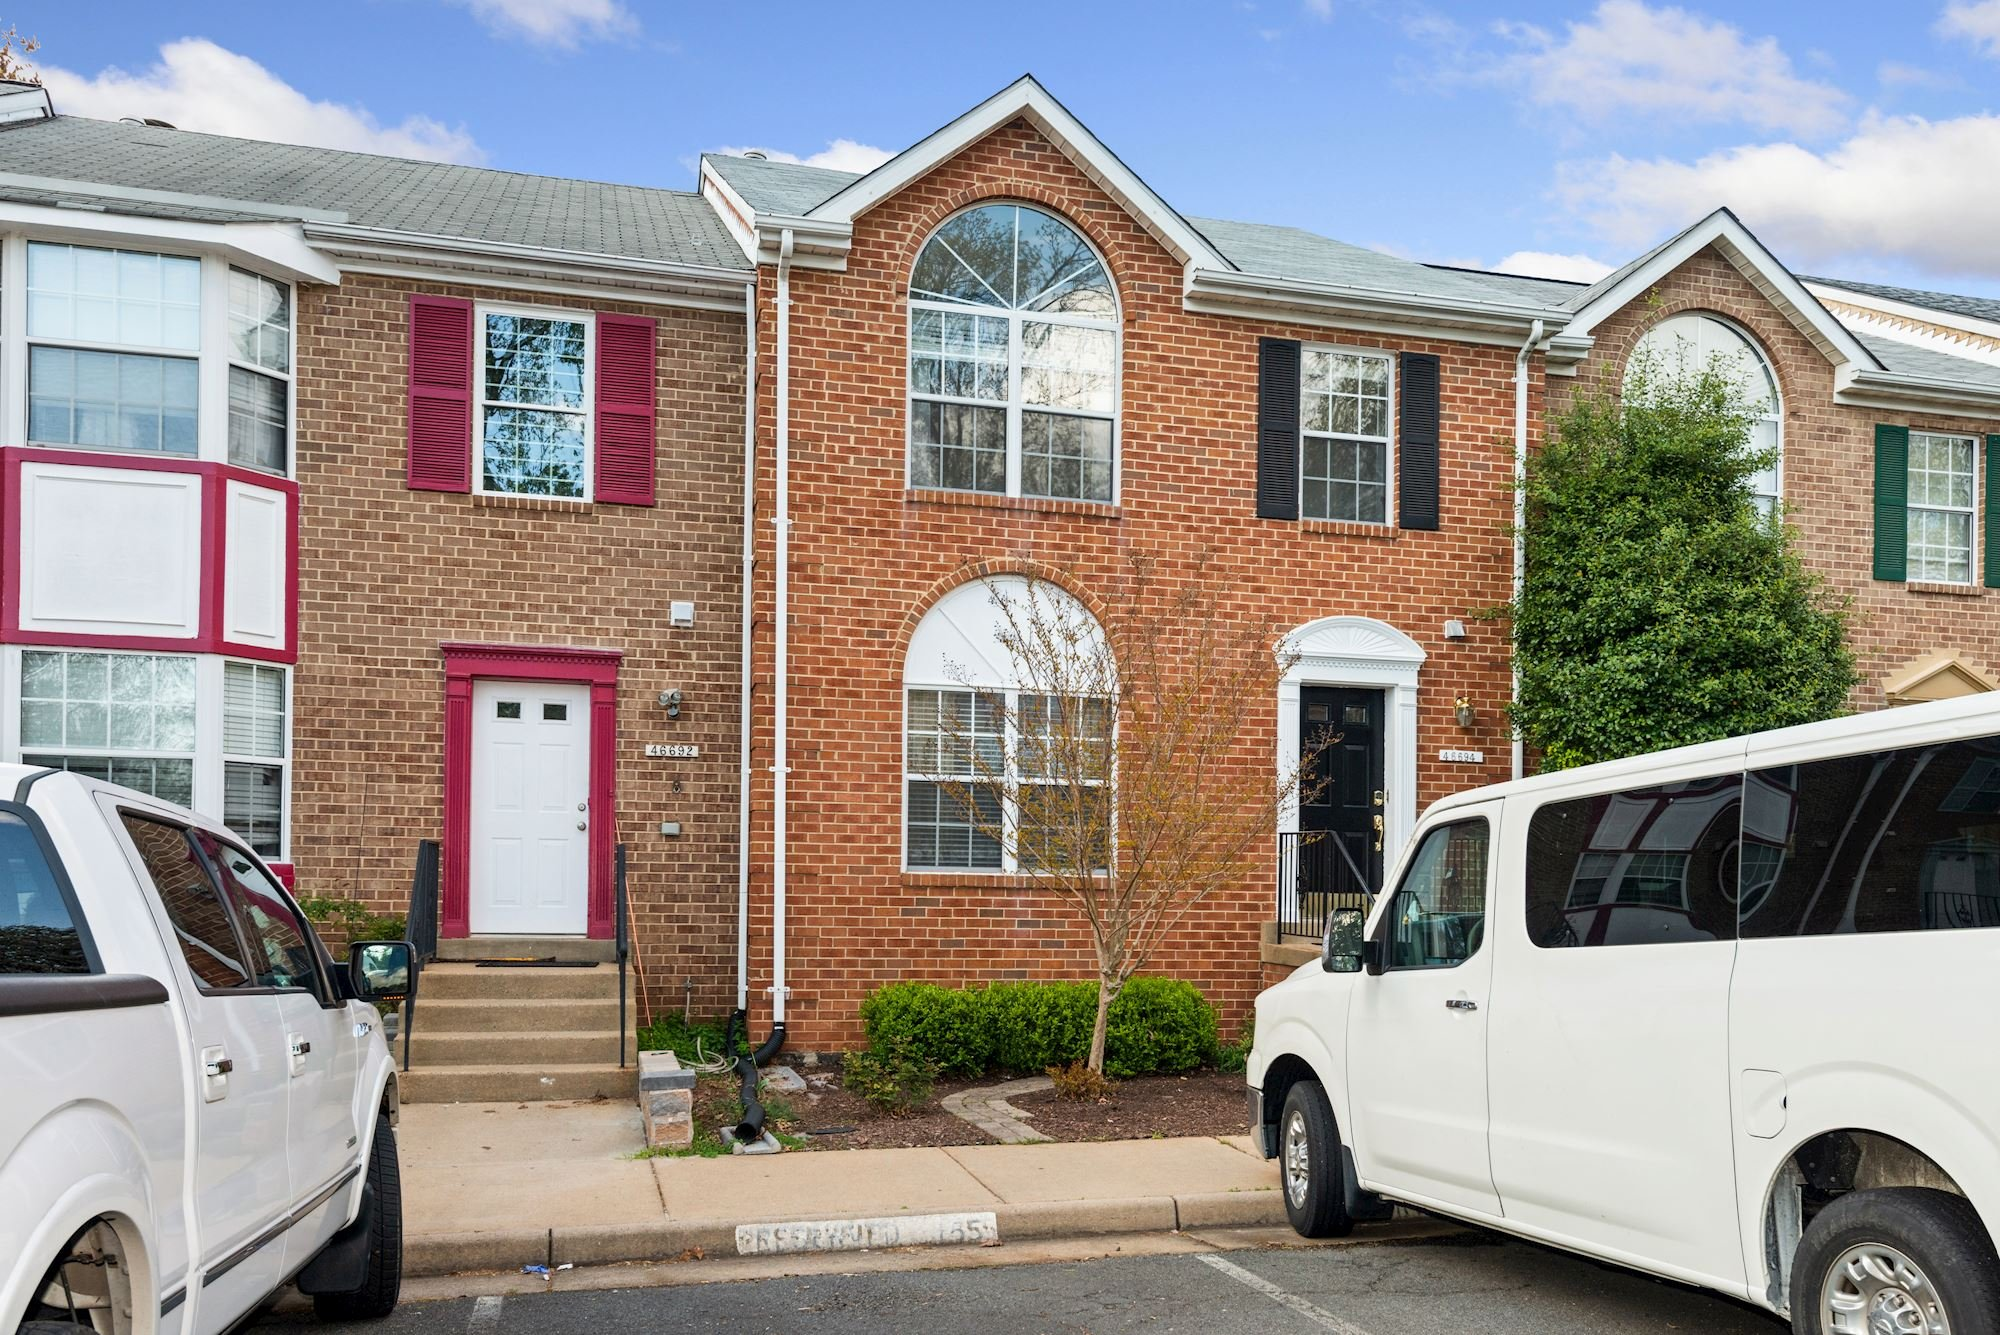 PENDING: Lovely 3 BDTownhome Located in Mirror Ridge Community